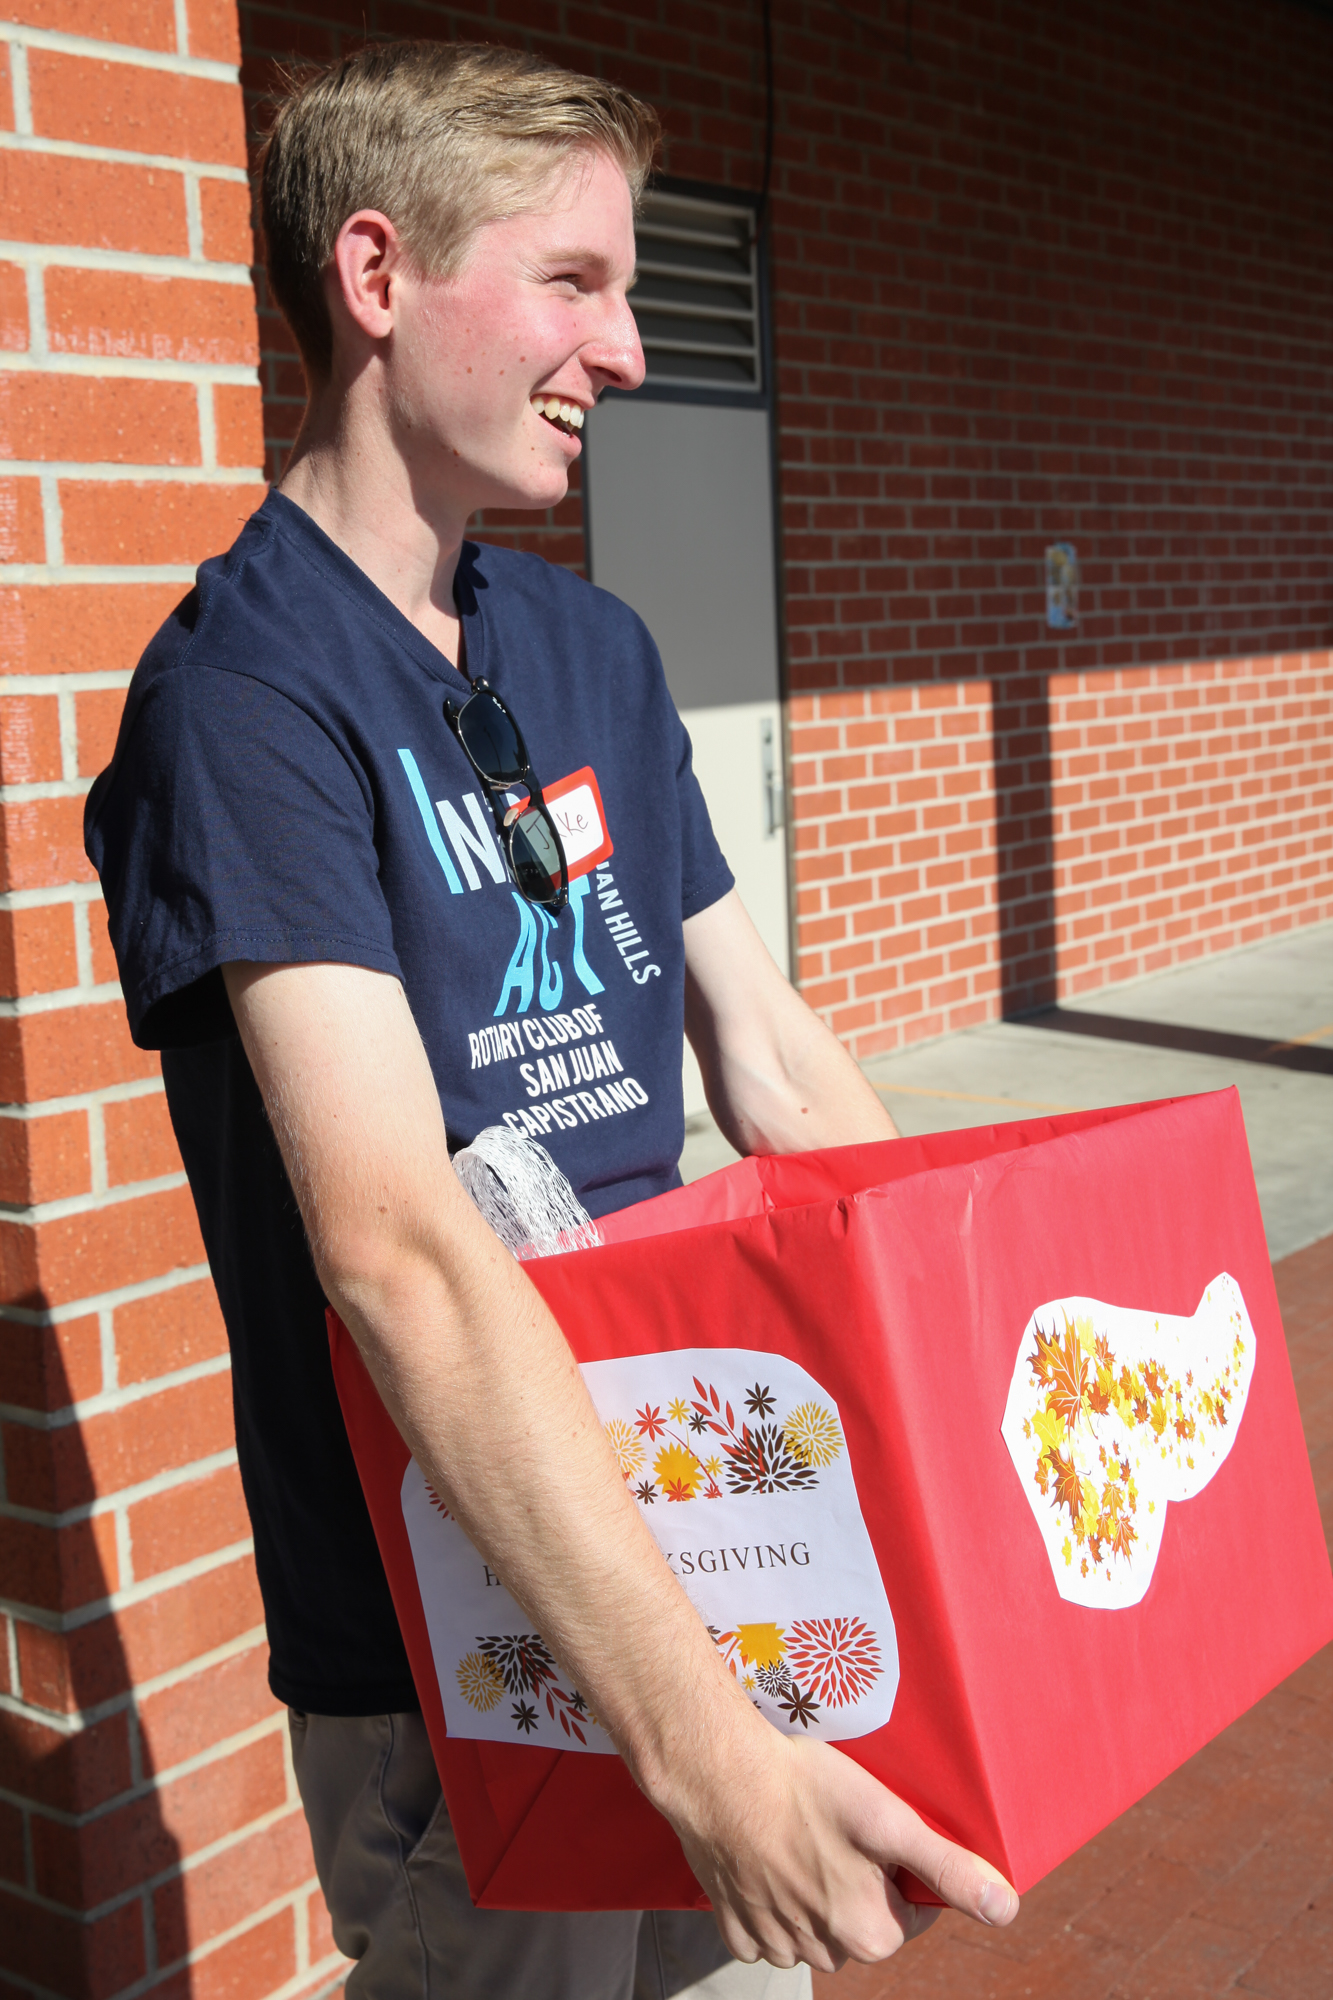 Jake Herron, 17, of San Juan Hills High School, carries a meal donation out to a family's car during the Rotary Club's event on Nov. 18. Photo: Allison Jarrell